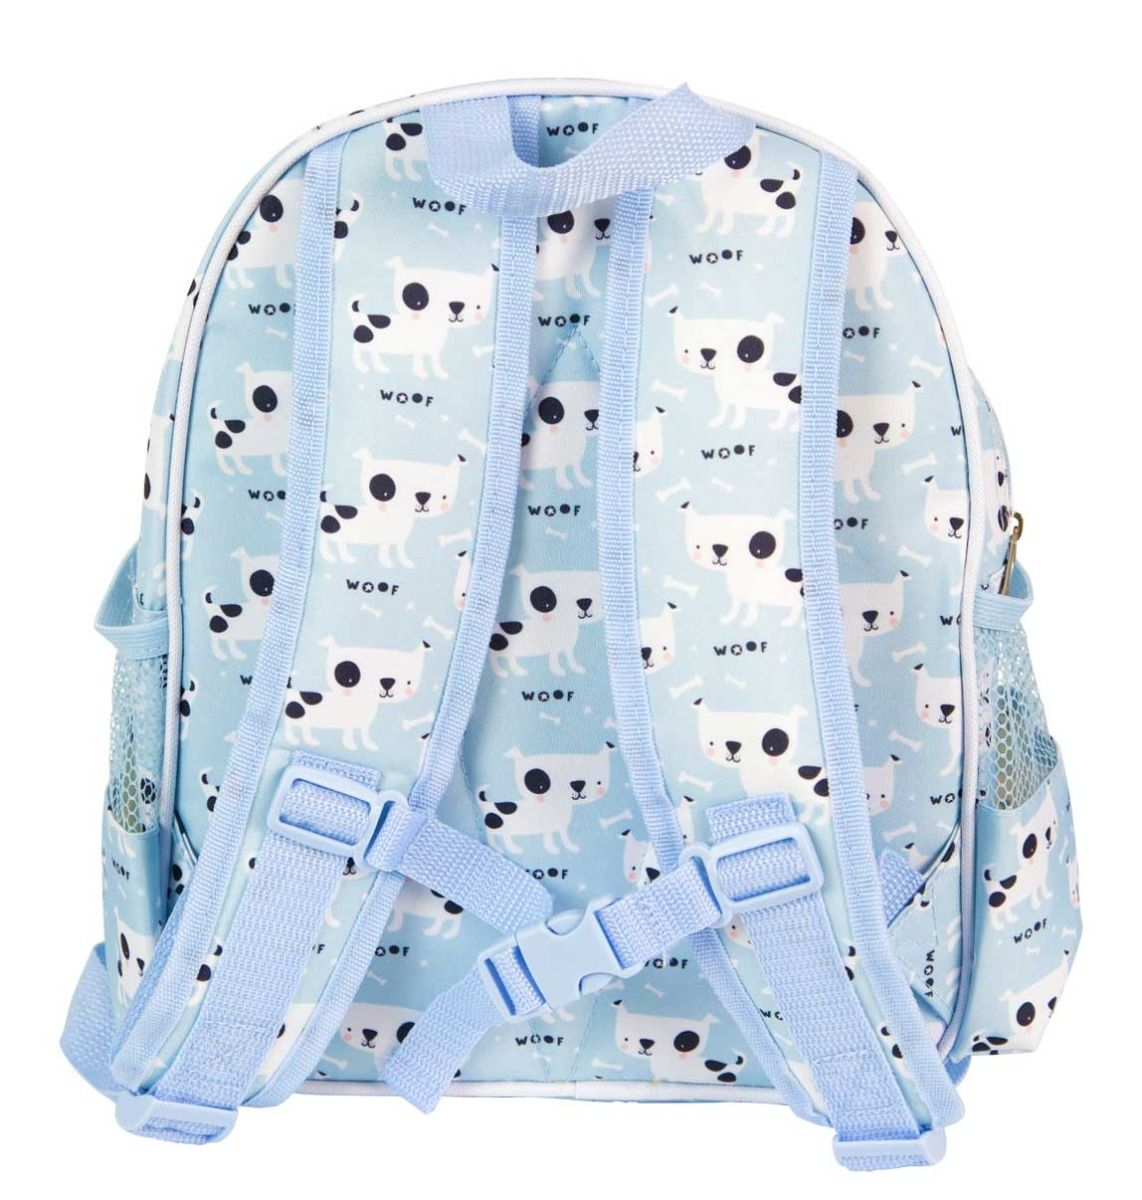 Dogs Backpack by A Lovely Little Company - PIQ f37ac58c70